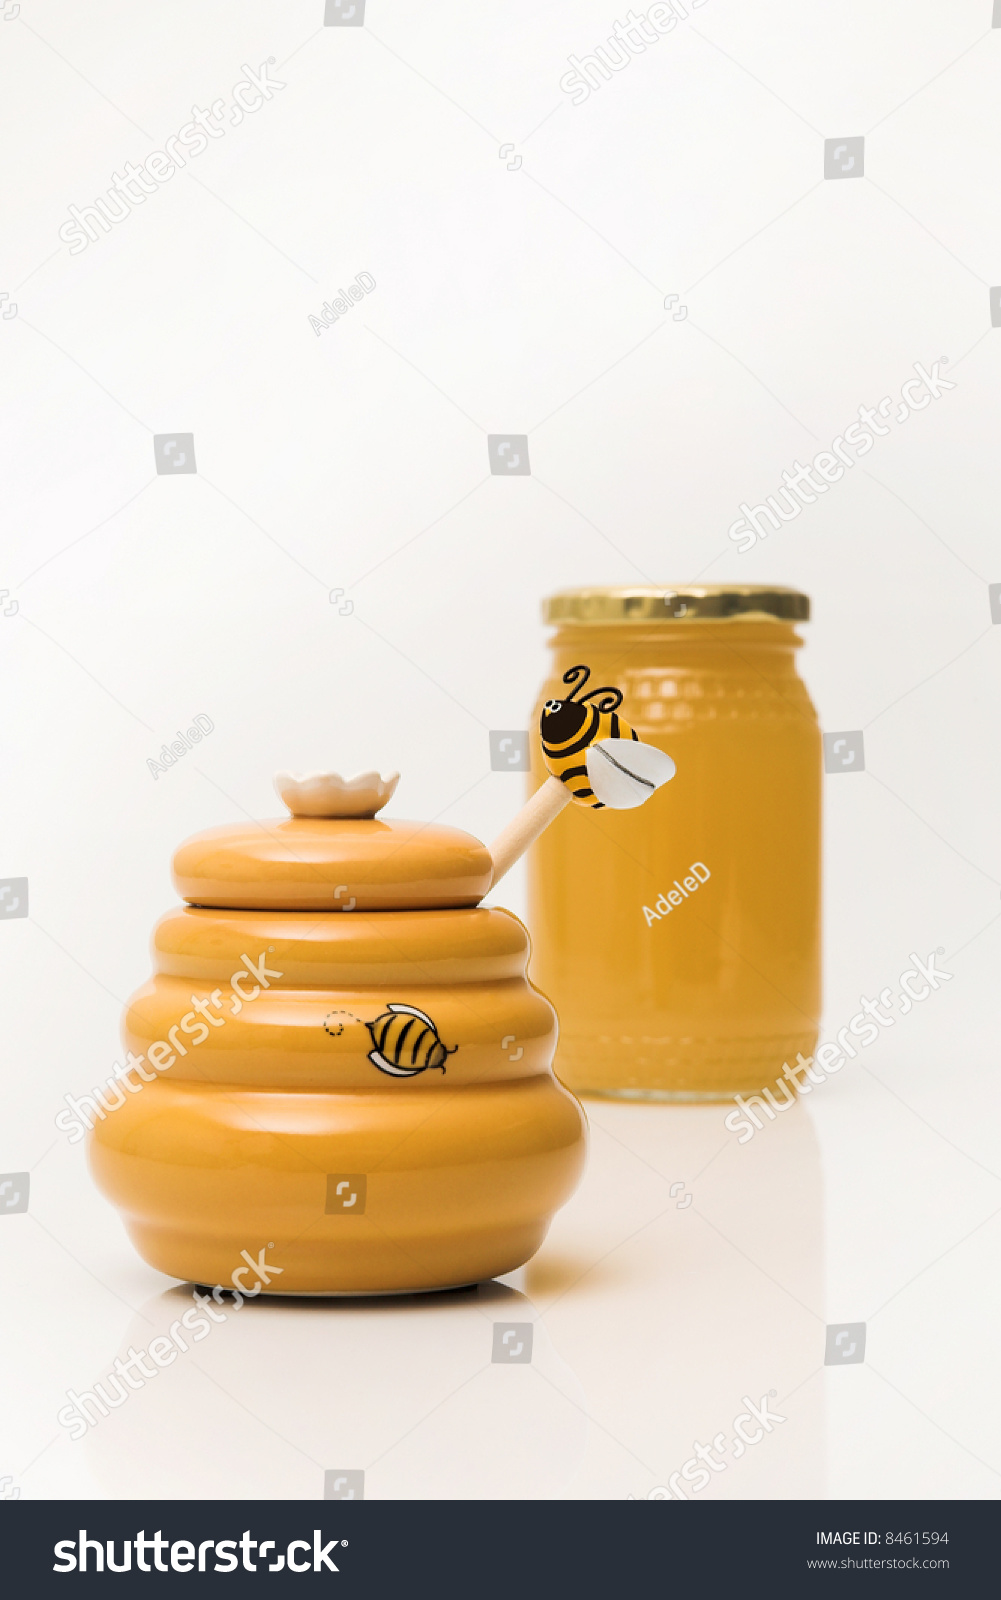 honey pot project Project title: project honey pot: status: online: website url: wwwprojecthoneypotorg: abstract: honey pots are used to tag e-mail addresses that are subsequently.